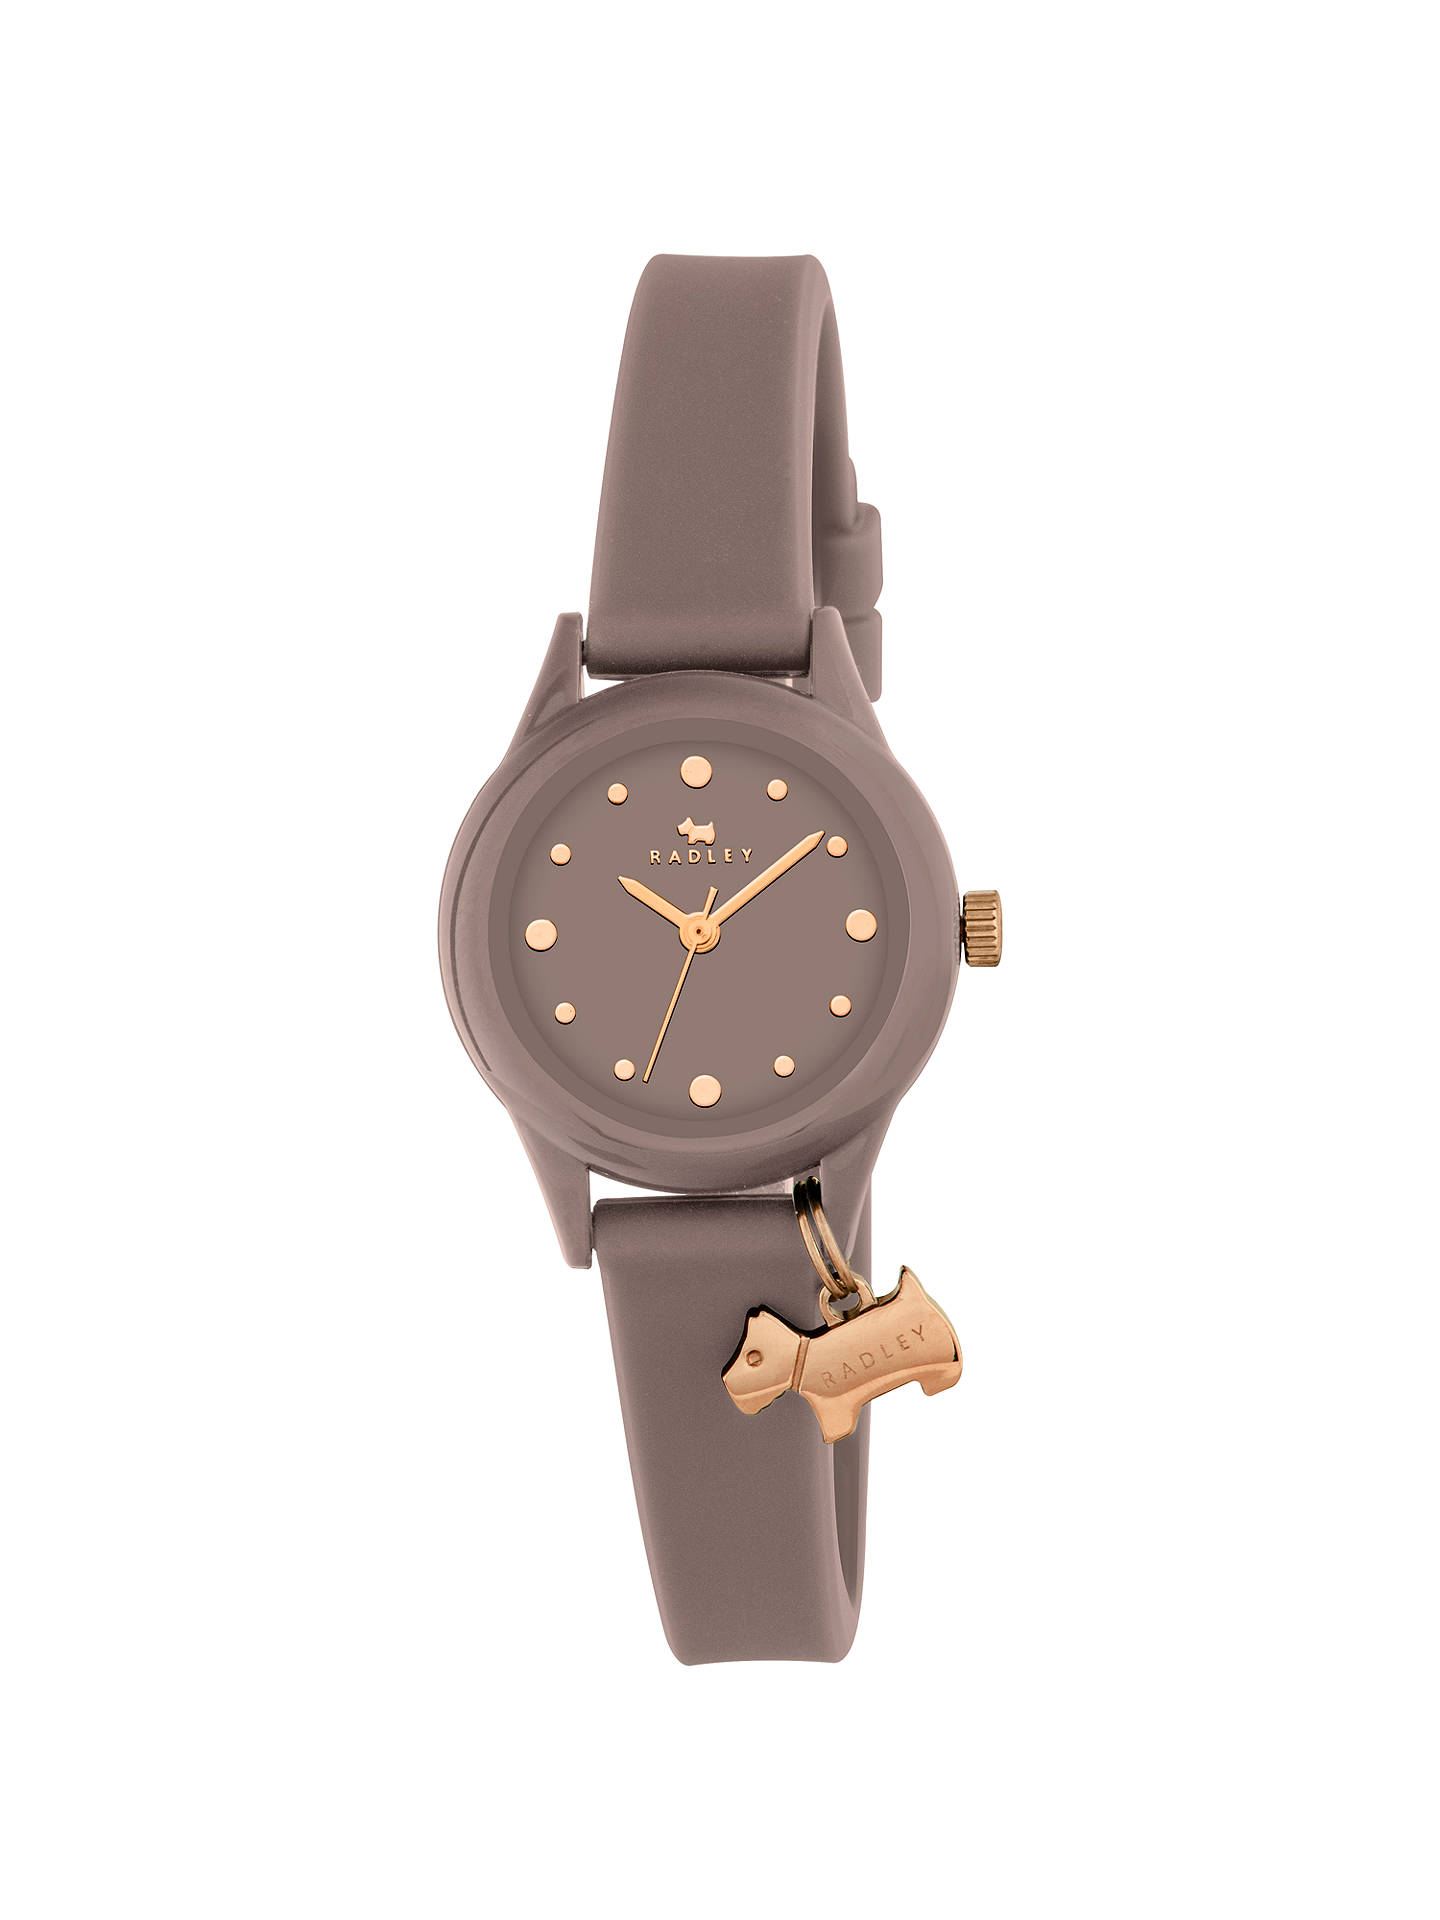 BuyRadley Women's Watch It Silicone Strap Watch, Taupe RY2322 Online at johnlewis.com